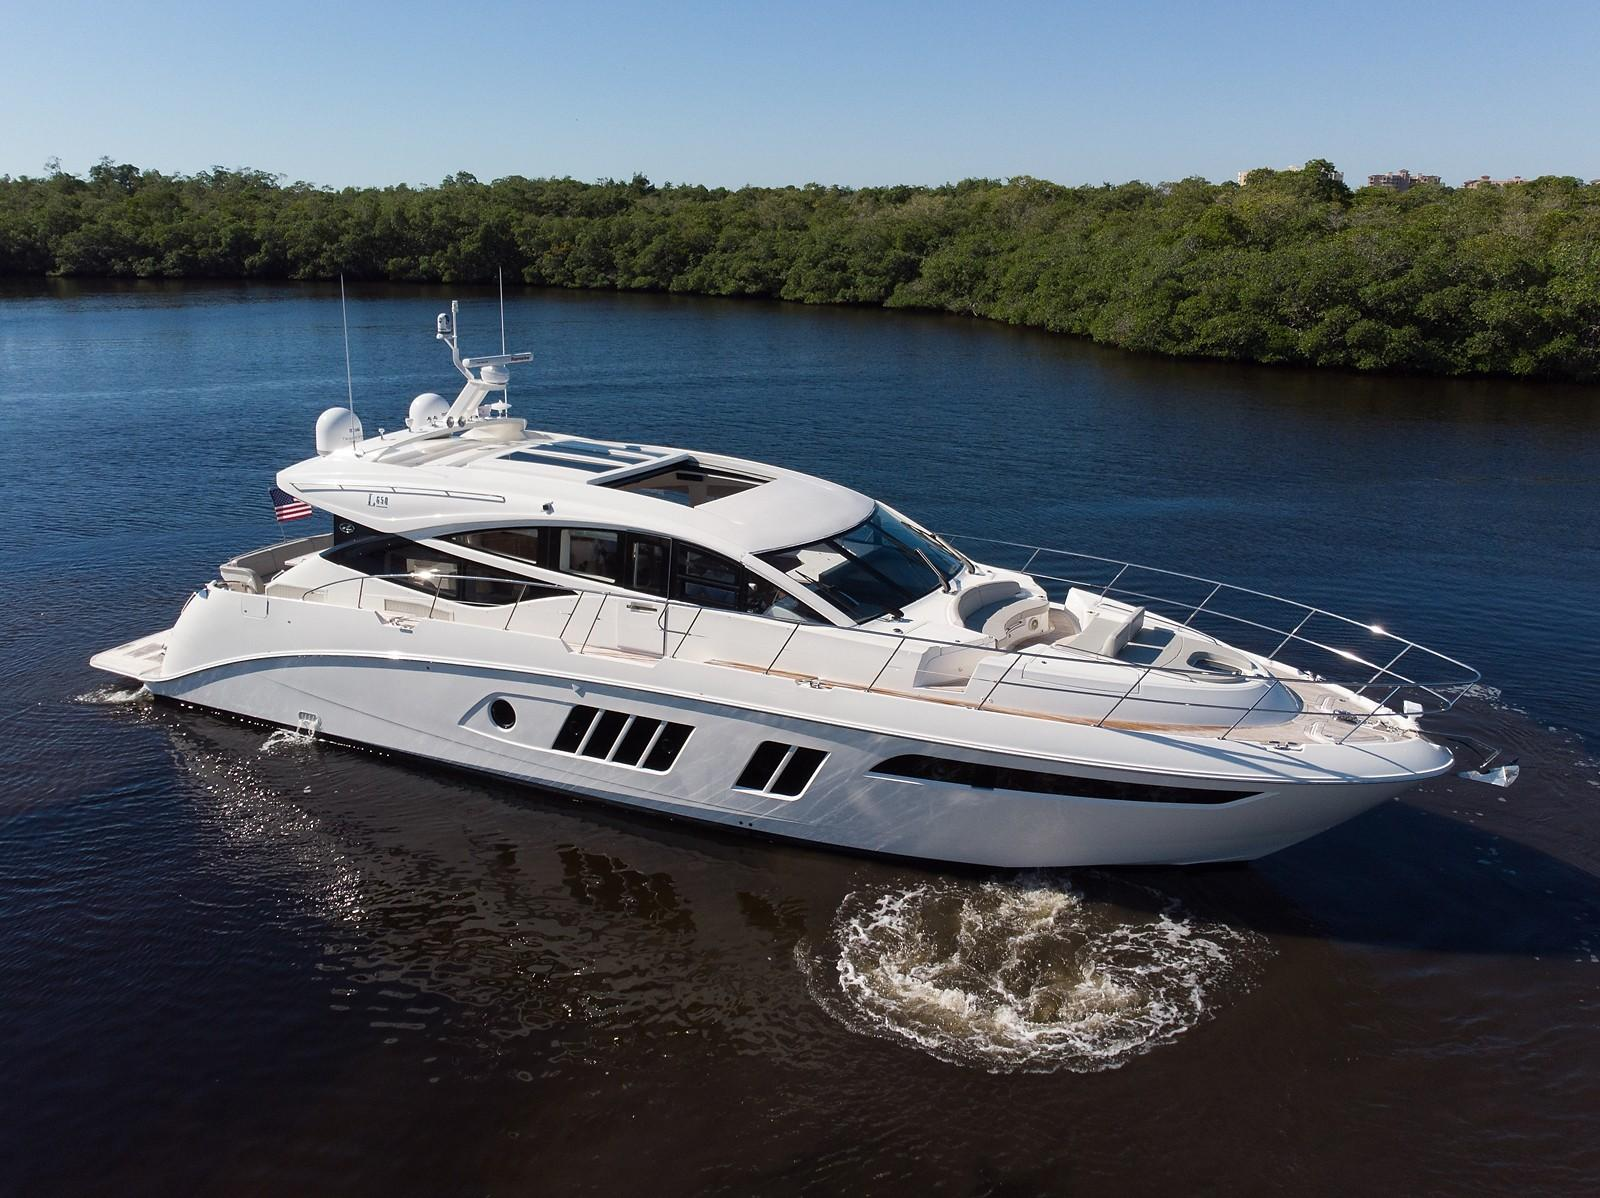 65 ft Sea Ray L650